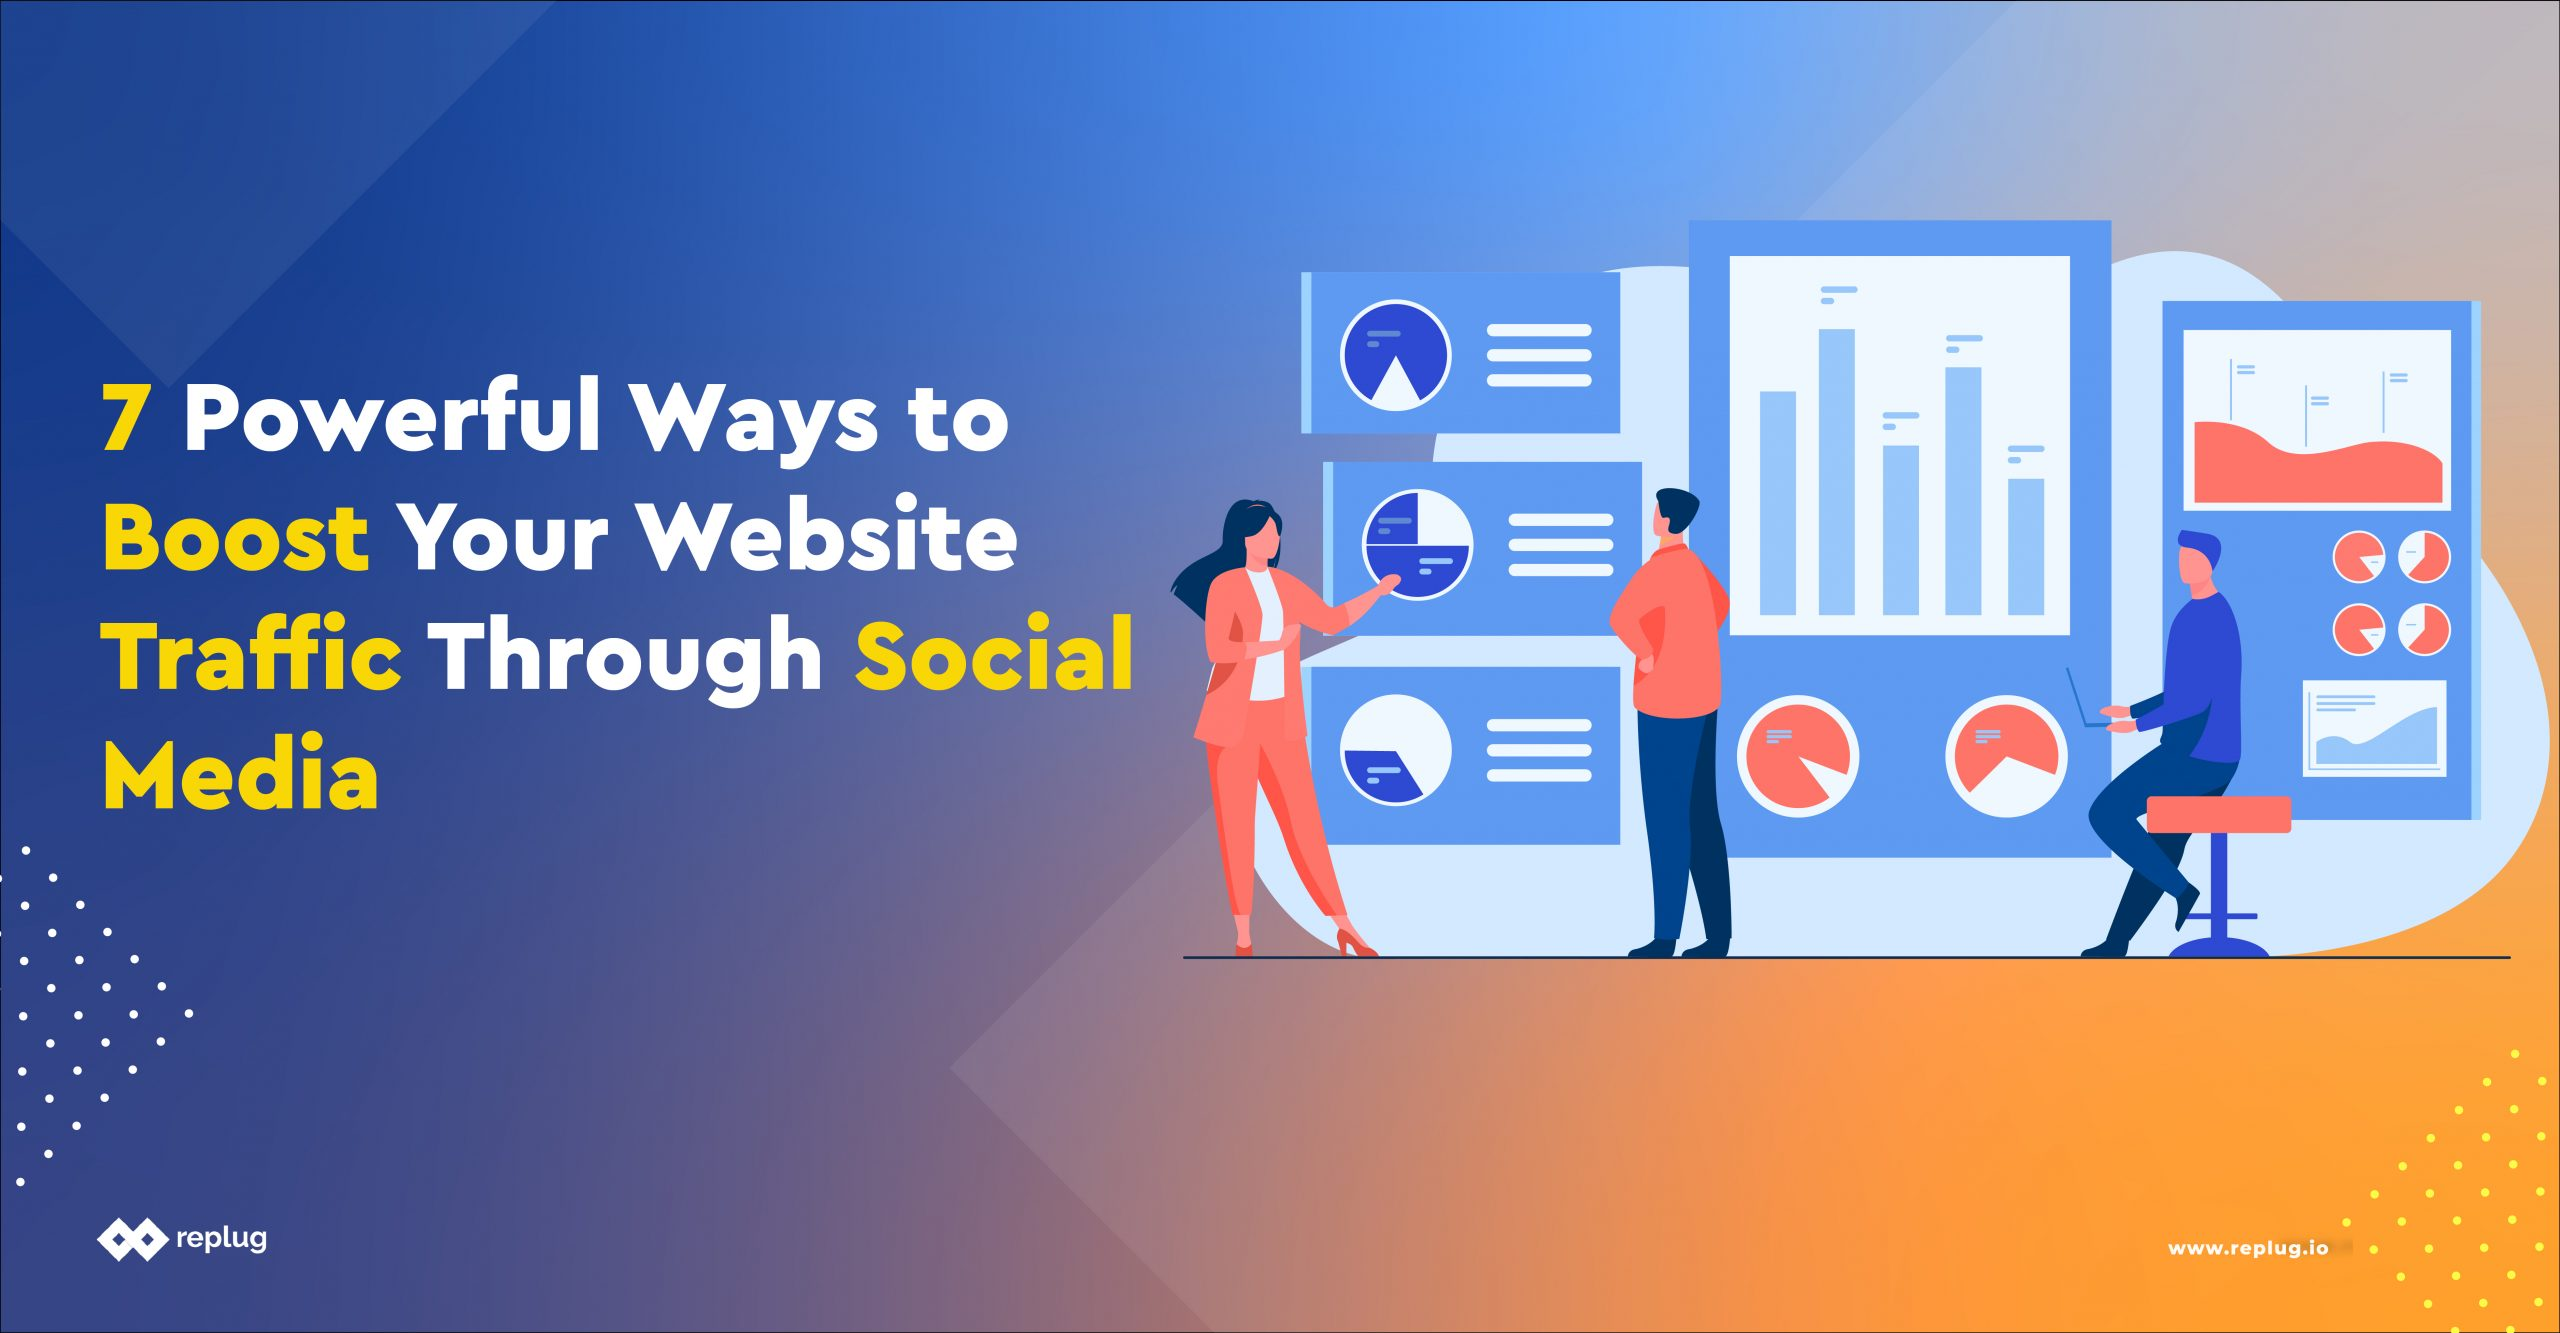 7 Powerful Ways to Boost Your Website Traffic Through Social Media